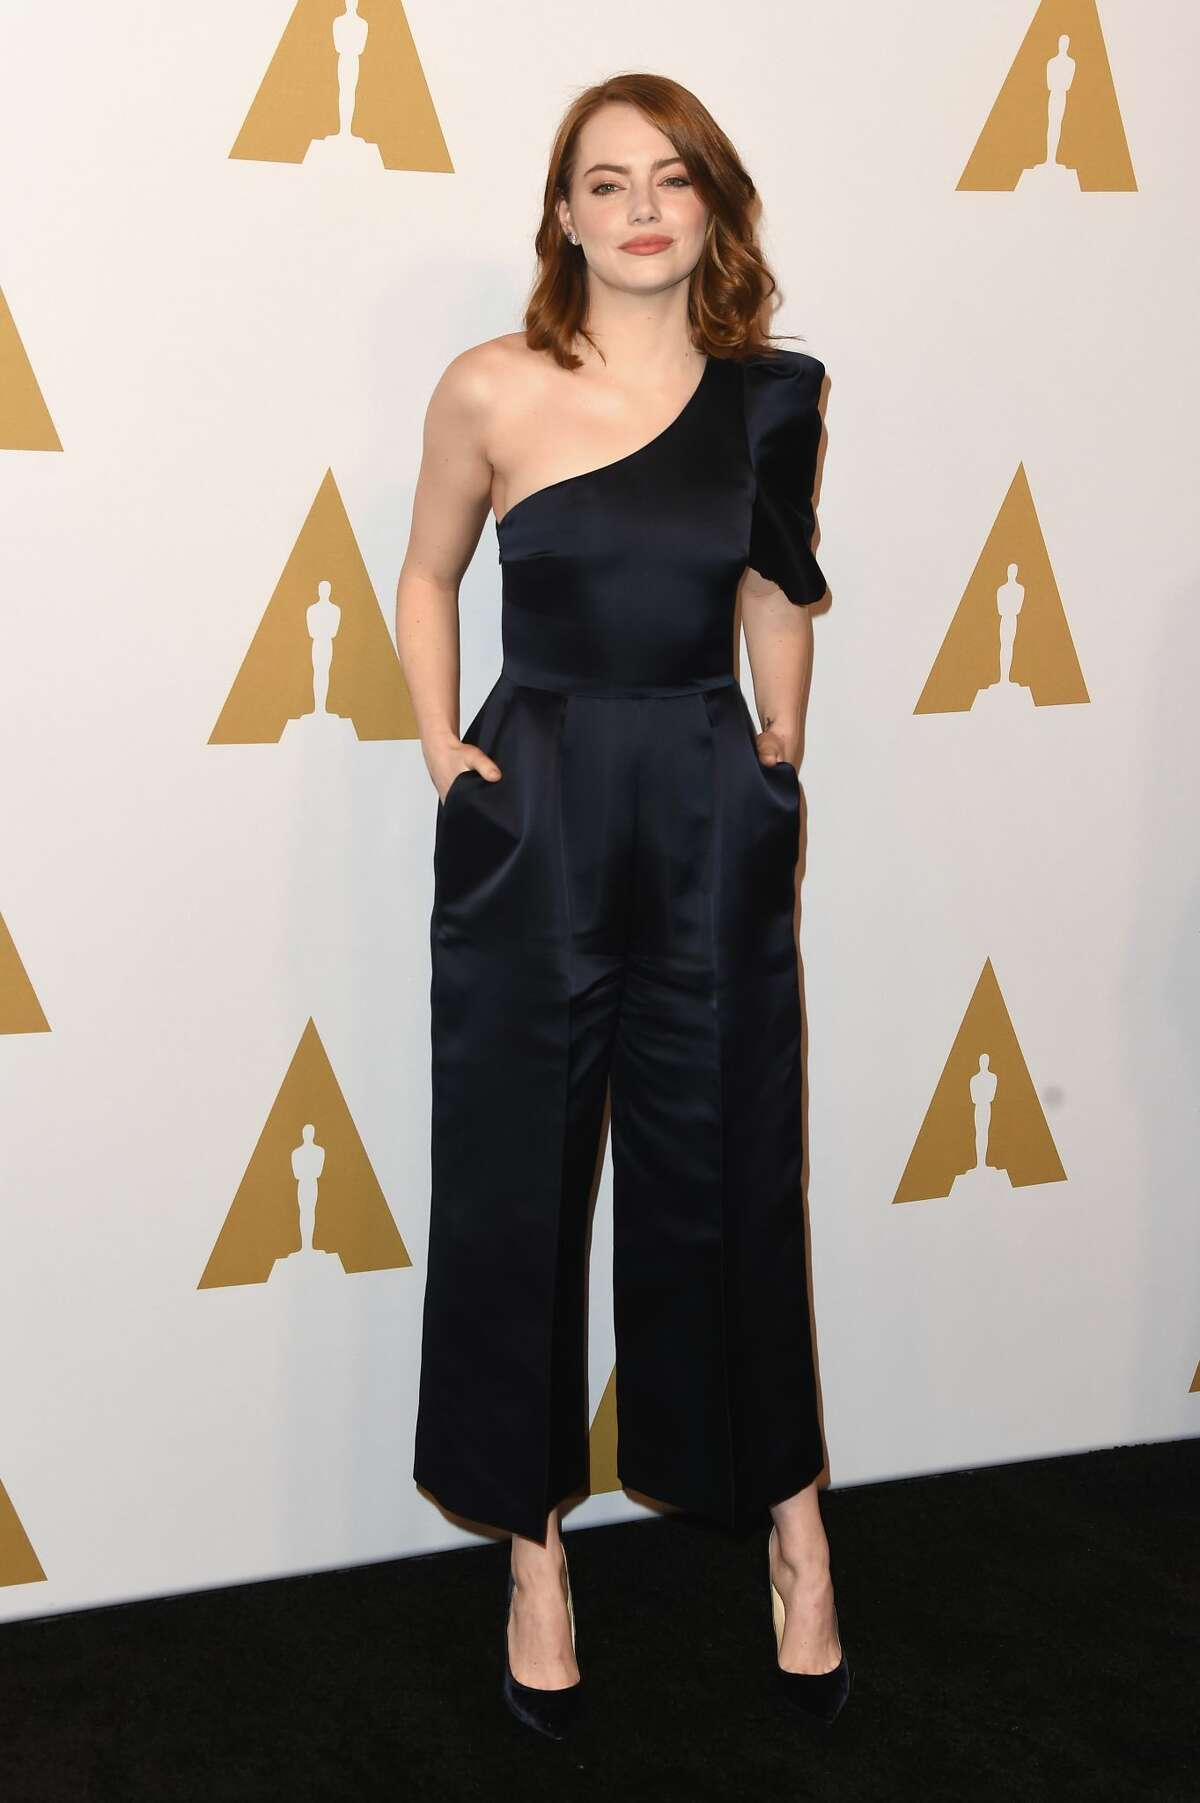 Emma Stone Best: Stone arrives in a jumpsuit that pushes the